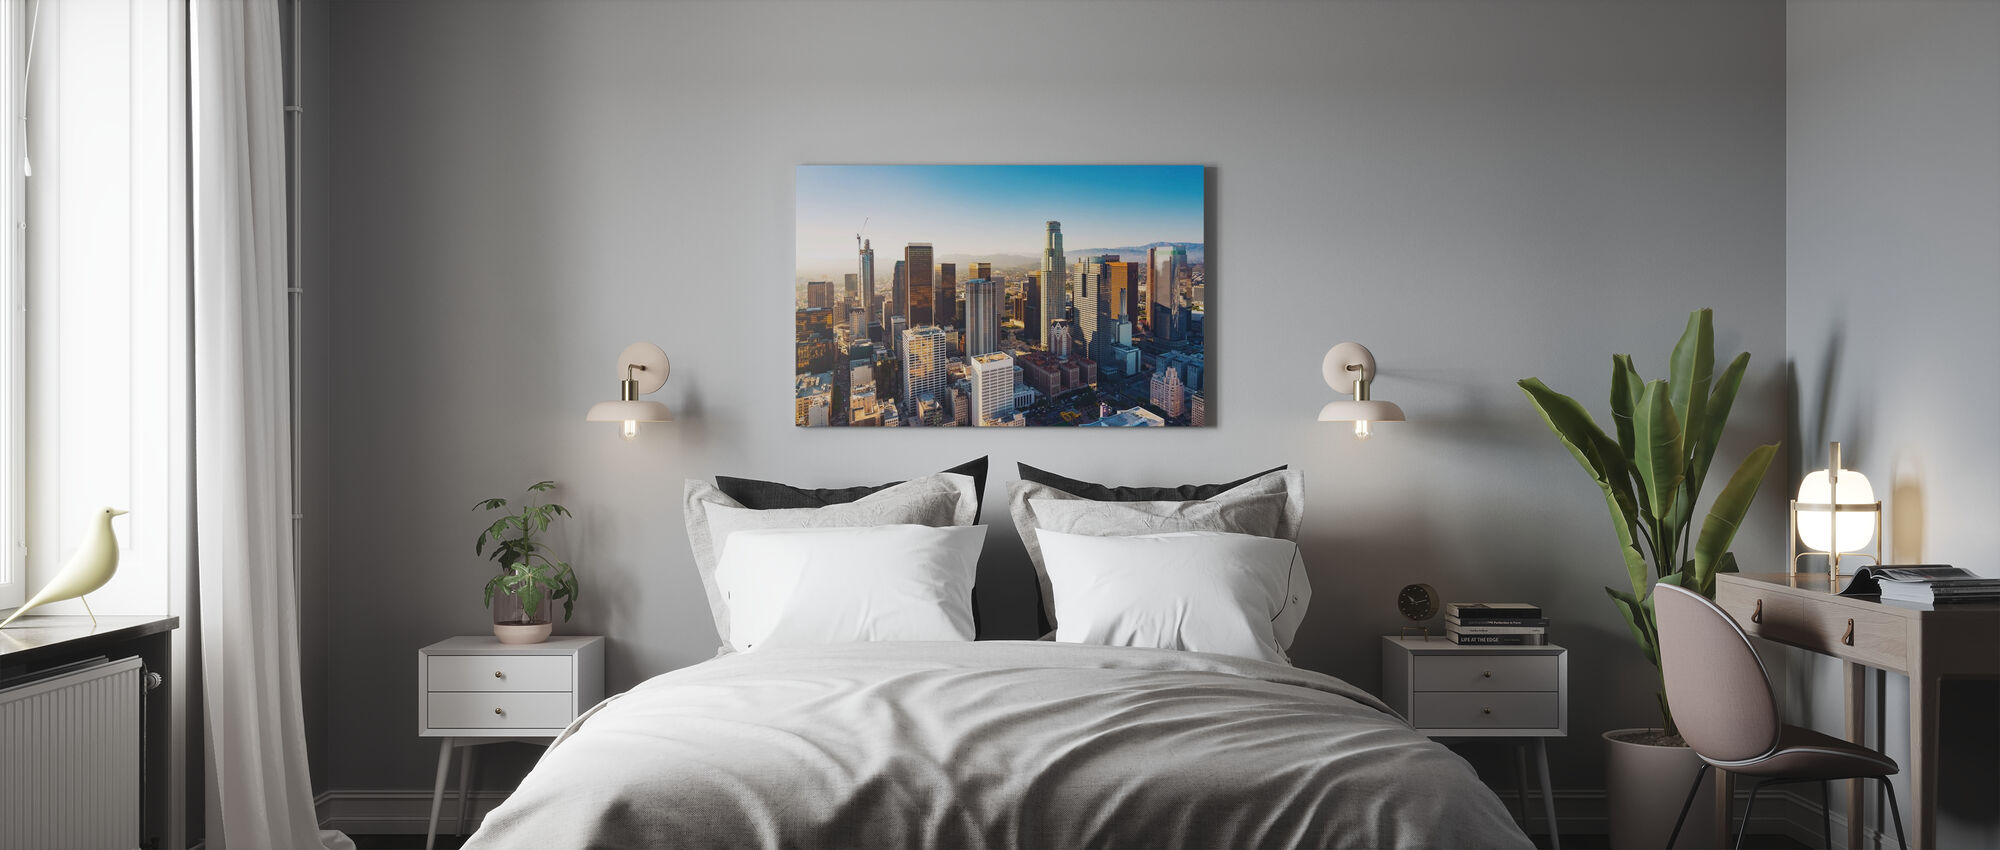 Downtown LA at Sunset - Canvas print - Bedroom